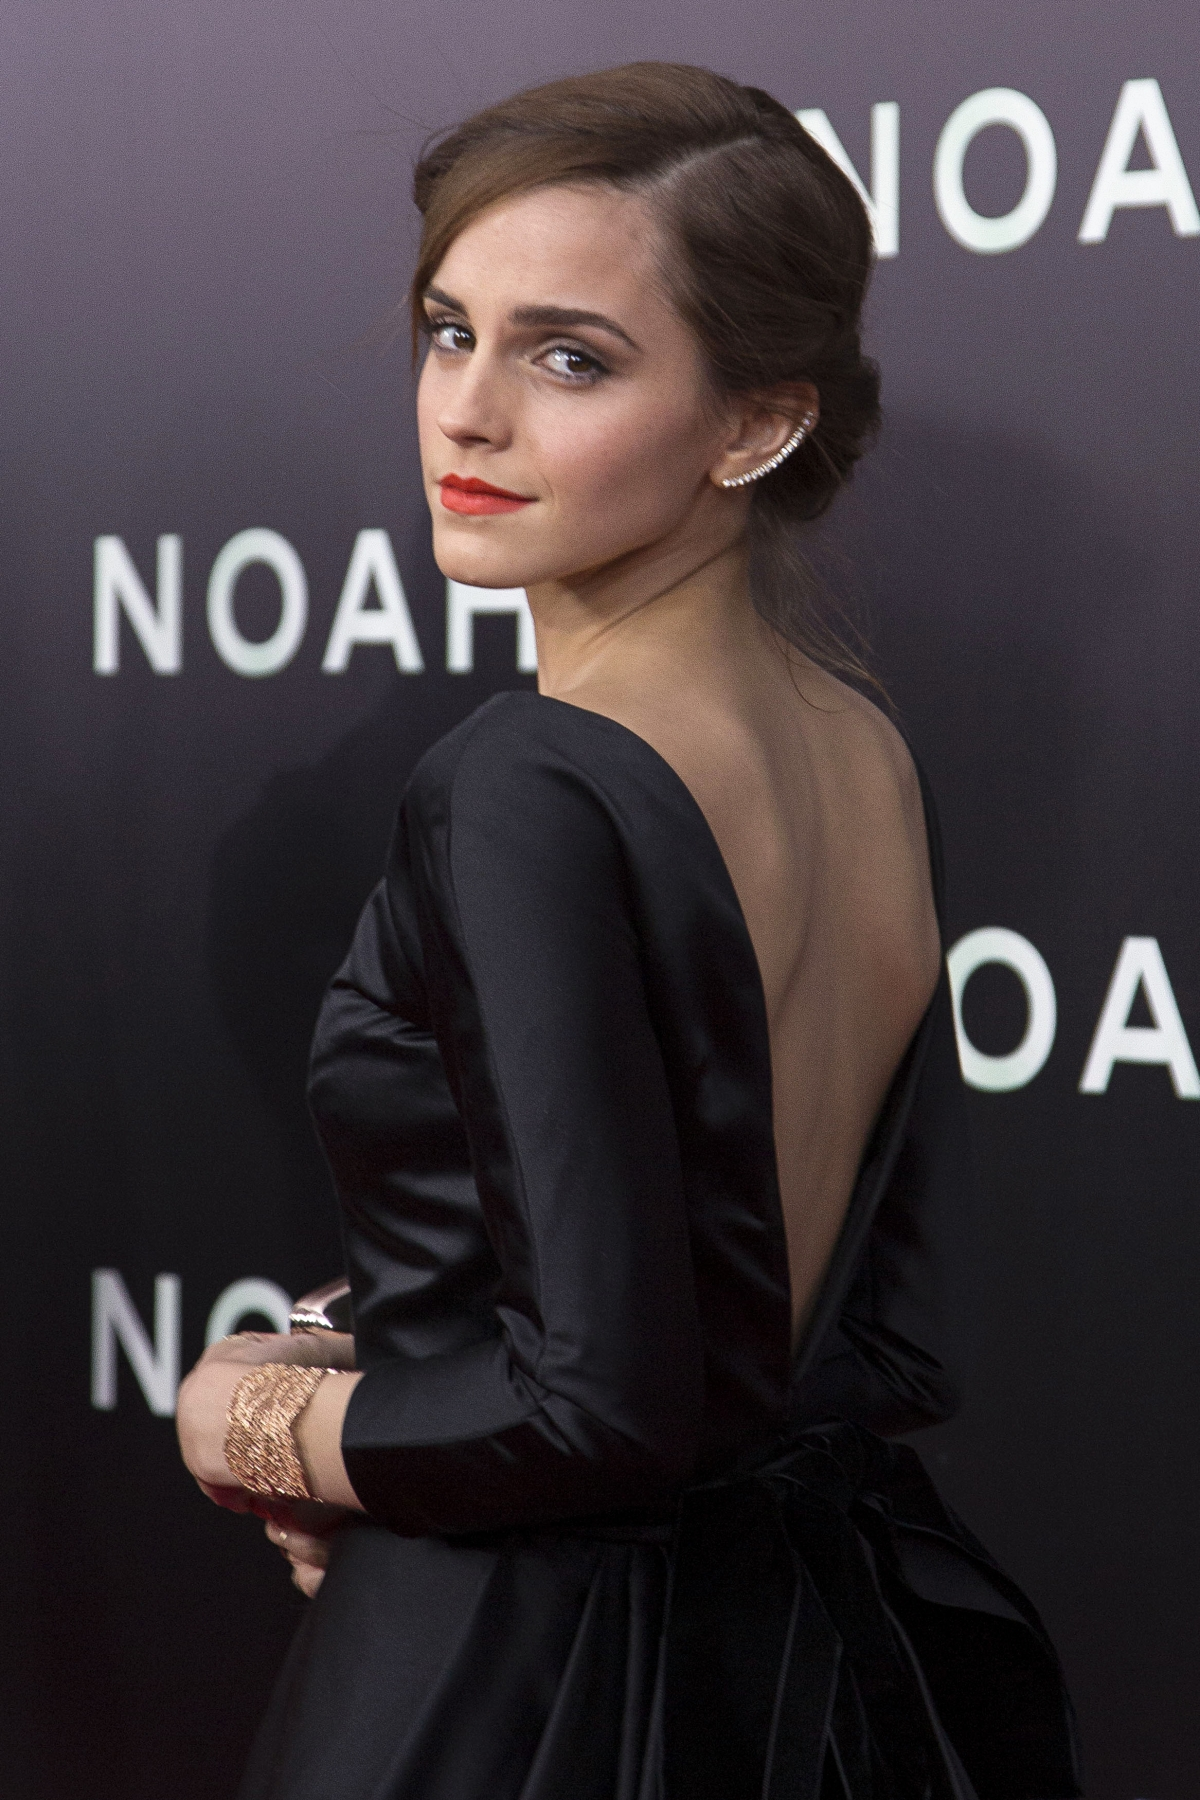 Emma Watson Steals The Show In Backless Ball Gown At Noah